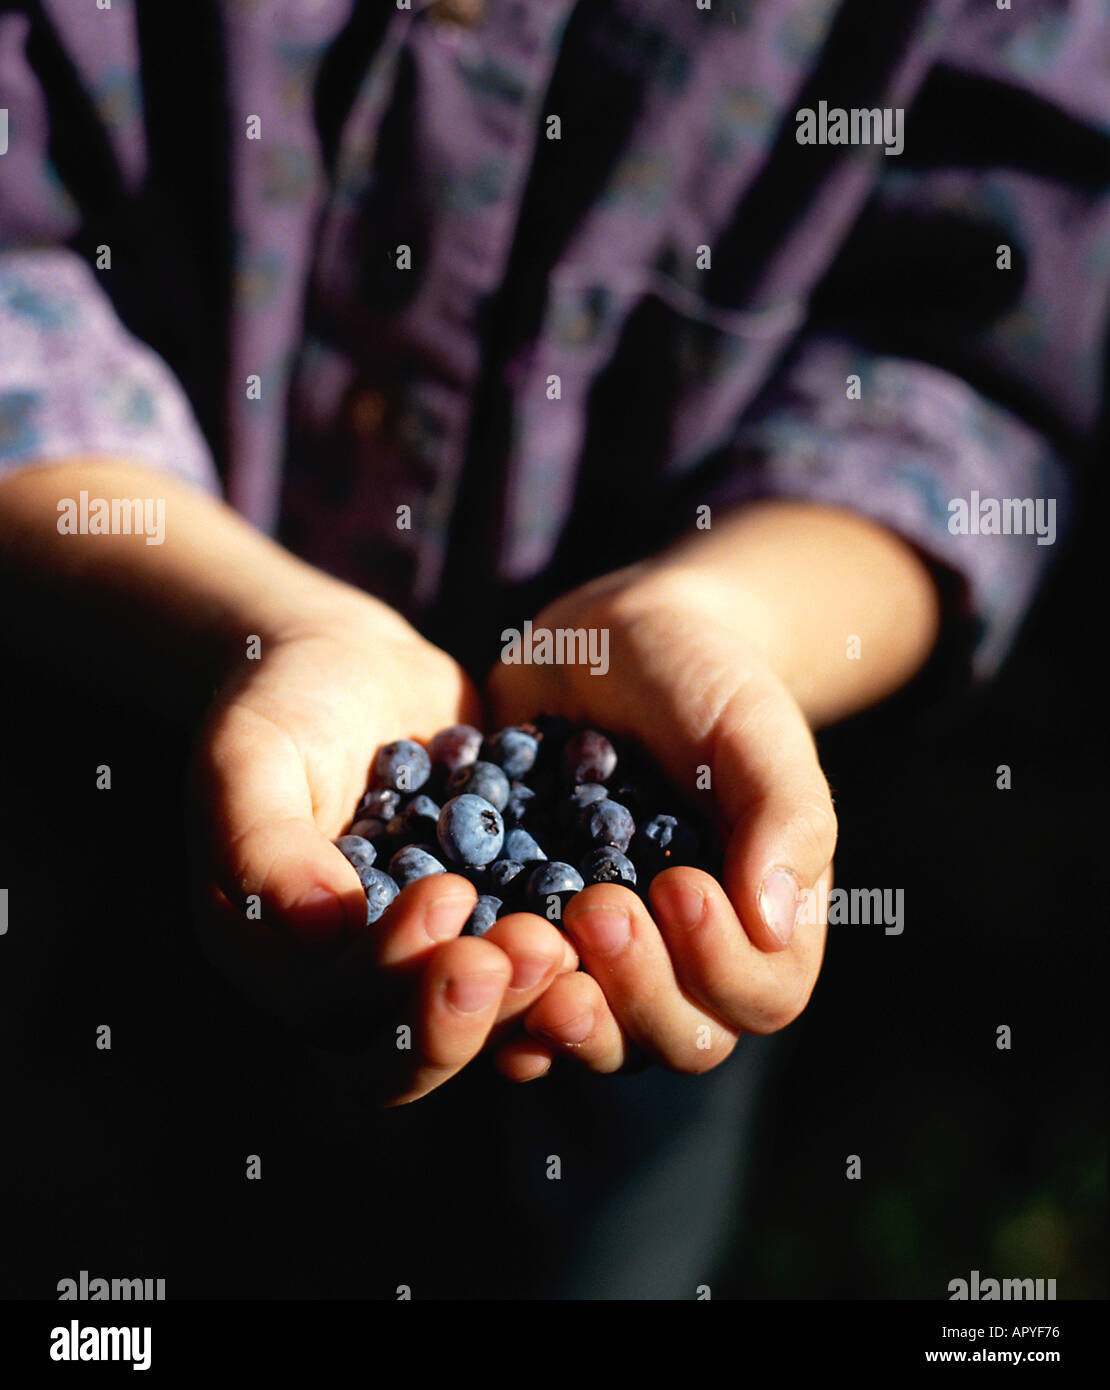 Young Boy 7 years old cupping Blueberries in his hands Stock Photo